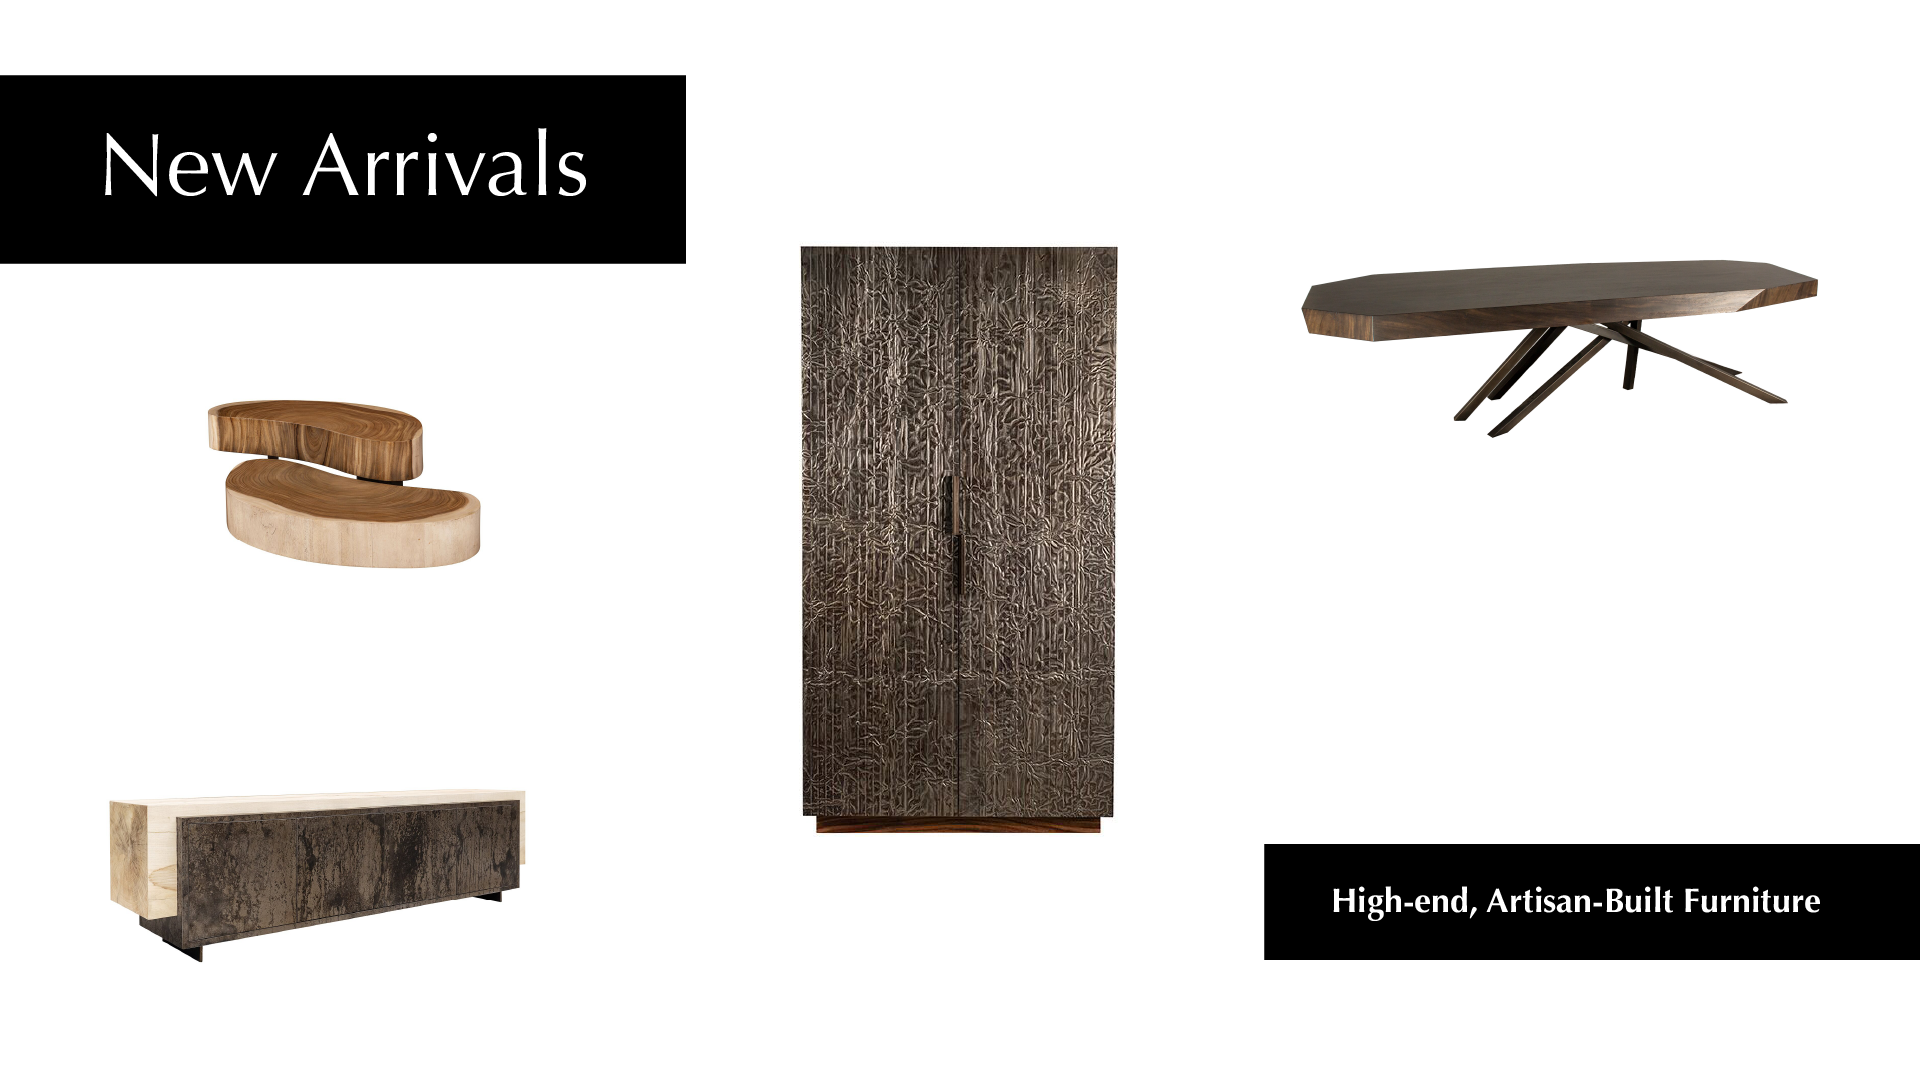 Fabulous Artisan Furniture Ethically Crafted for Park Furnishings